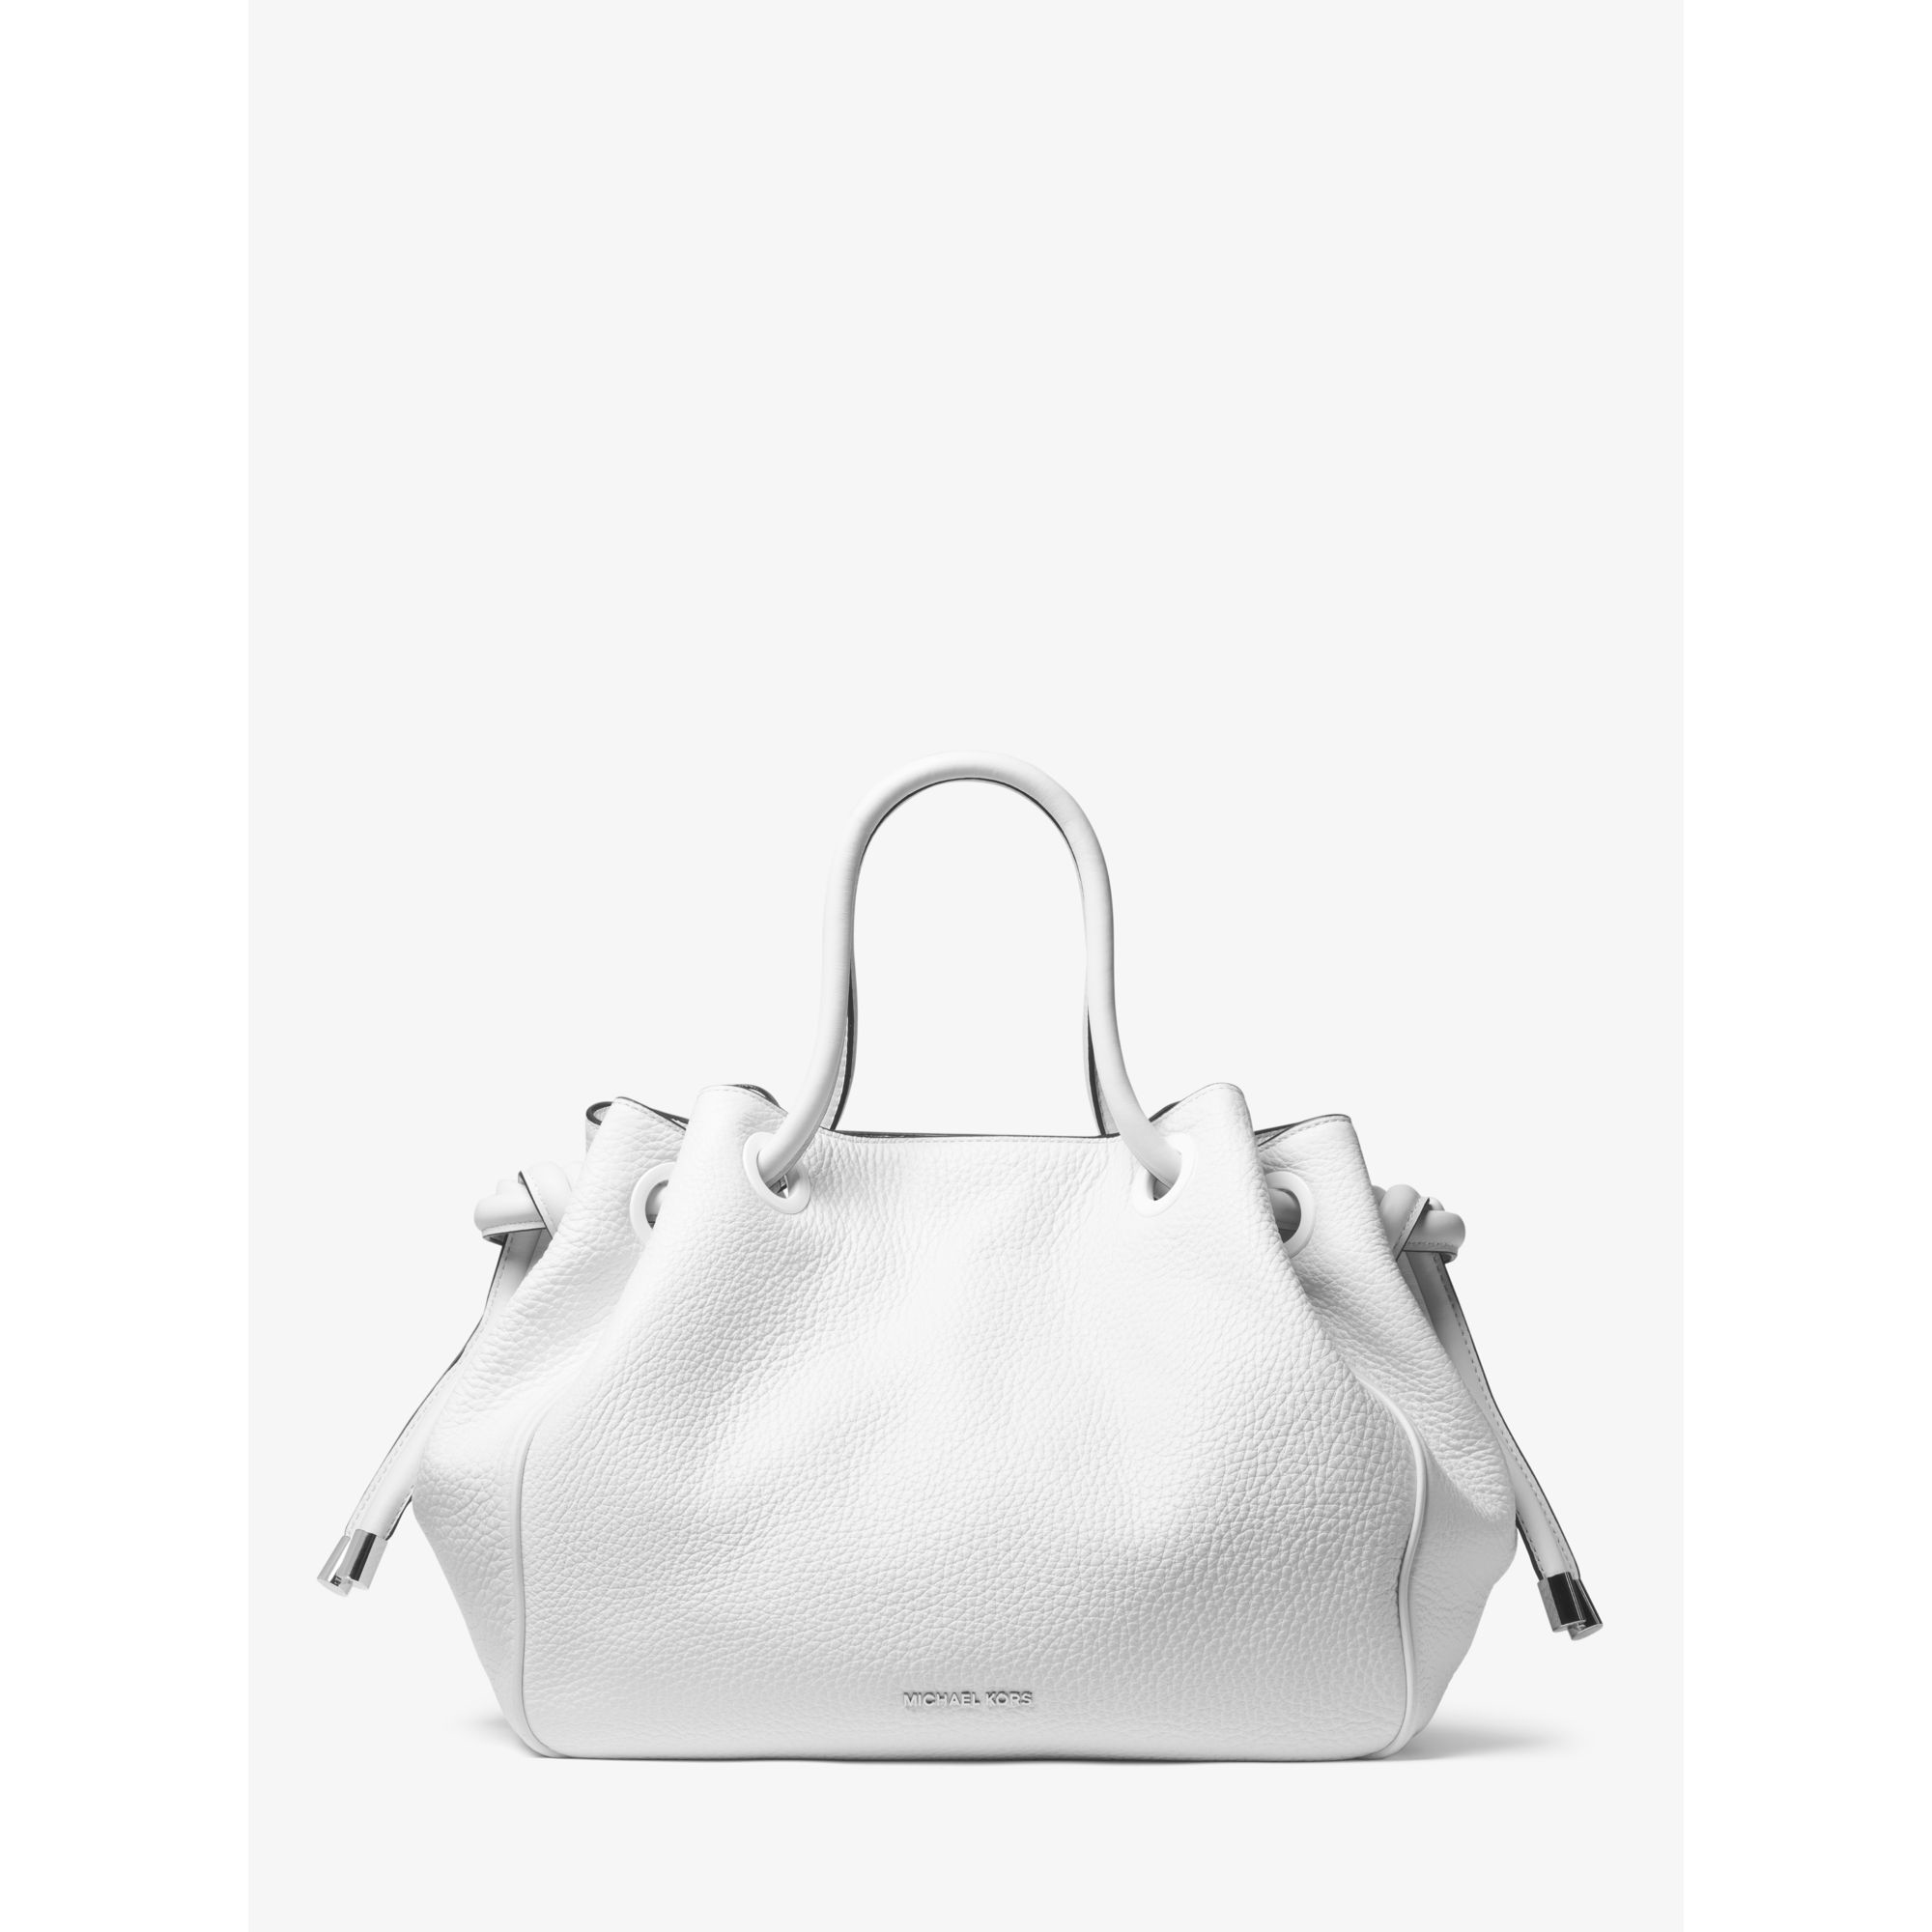 cc78e5ca8c9e64 Michael Kors Dalia Large Leather Tote in White - Lyst